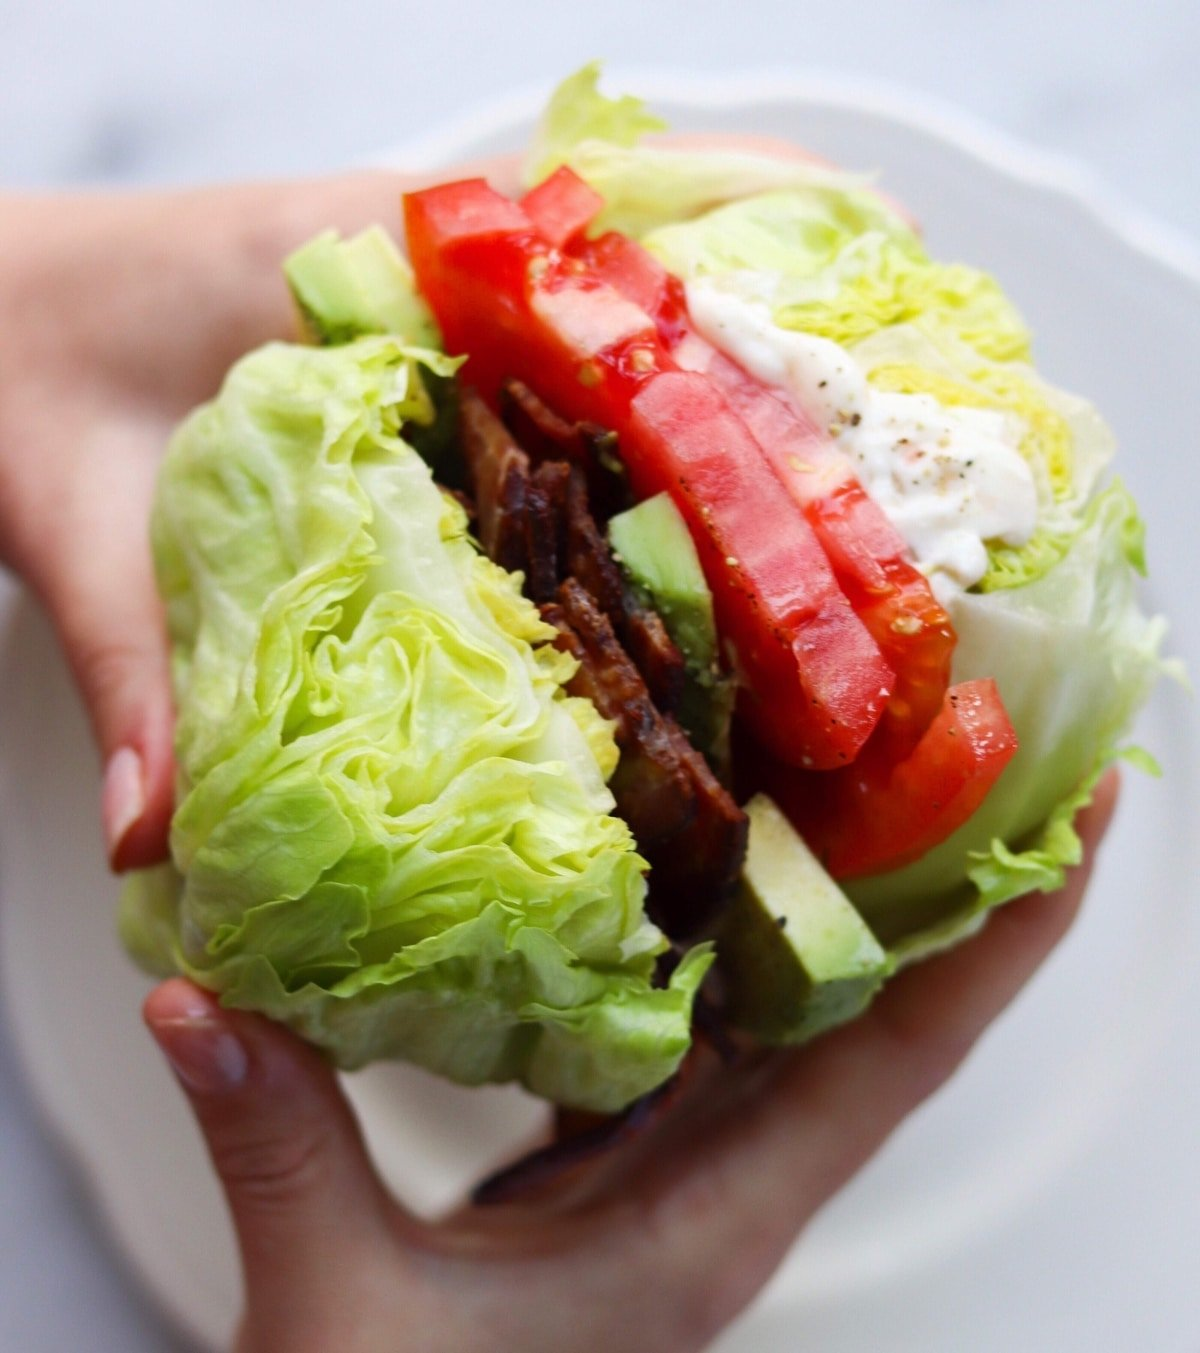 Two hands holding the finished Wedge Salad Sandwich over a white plate.